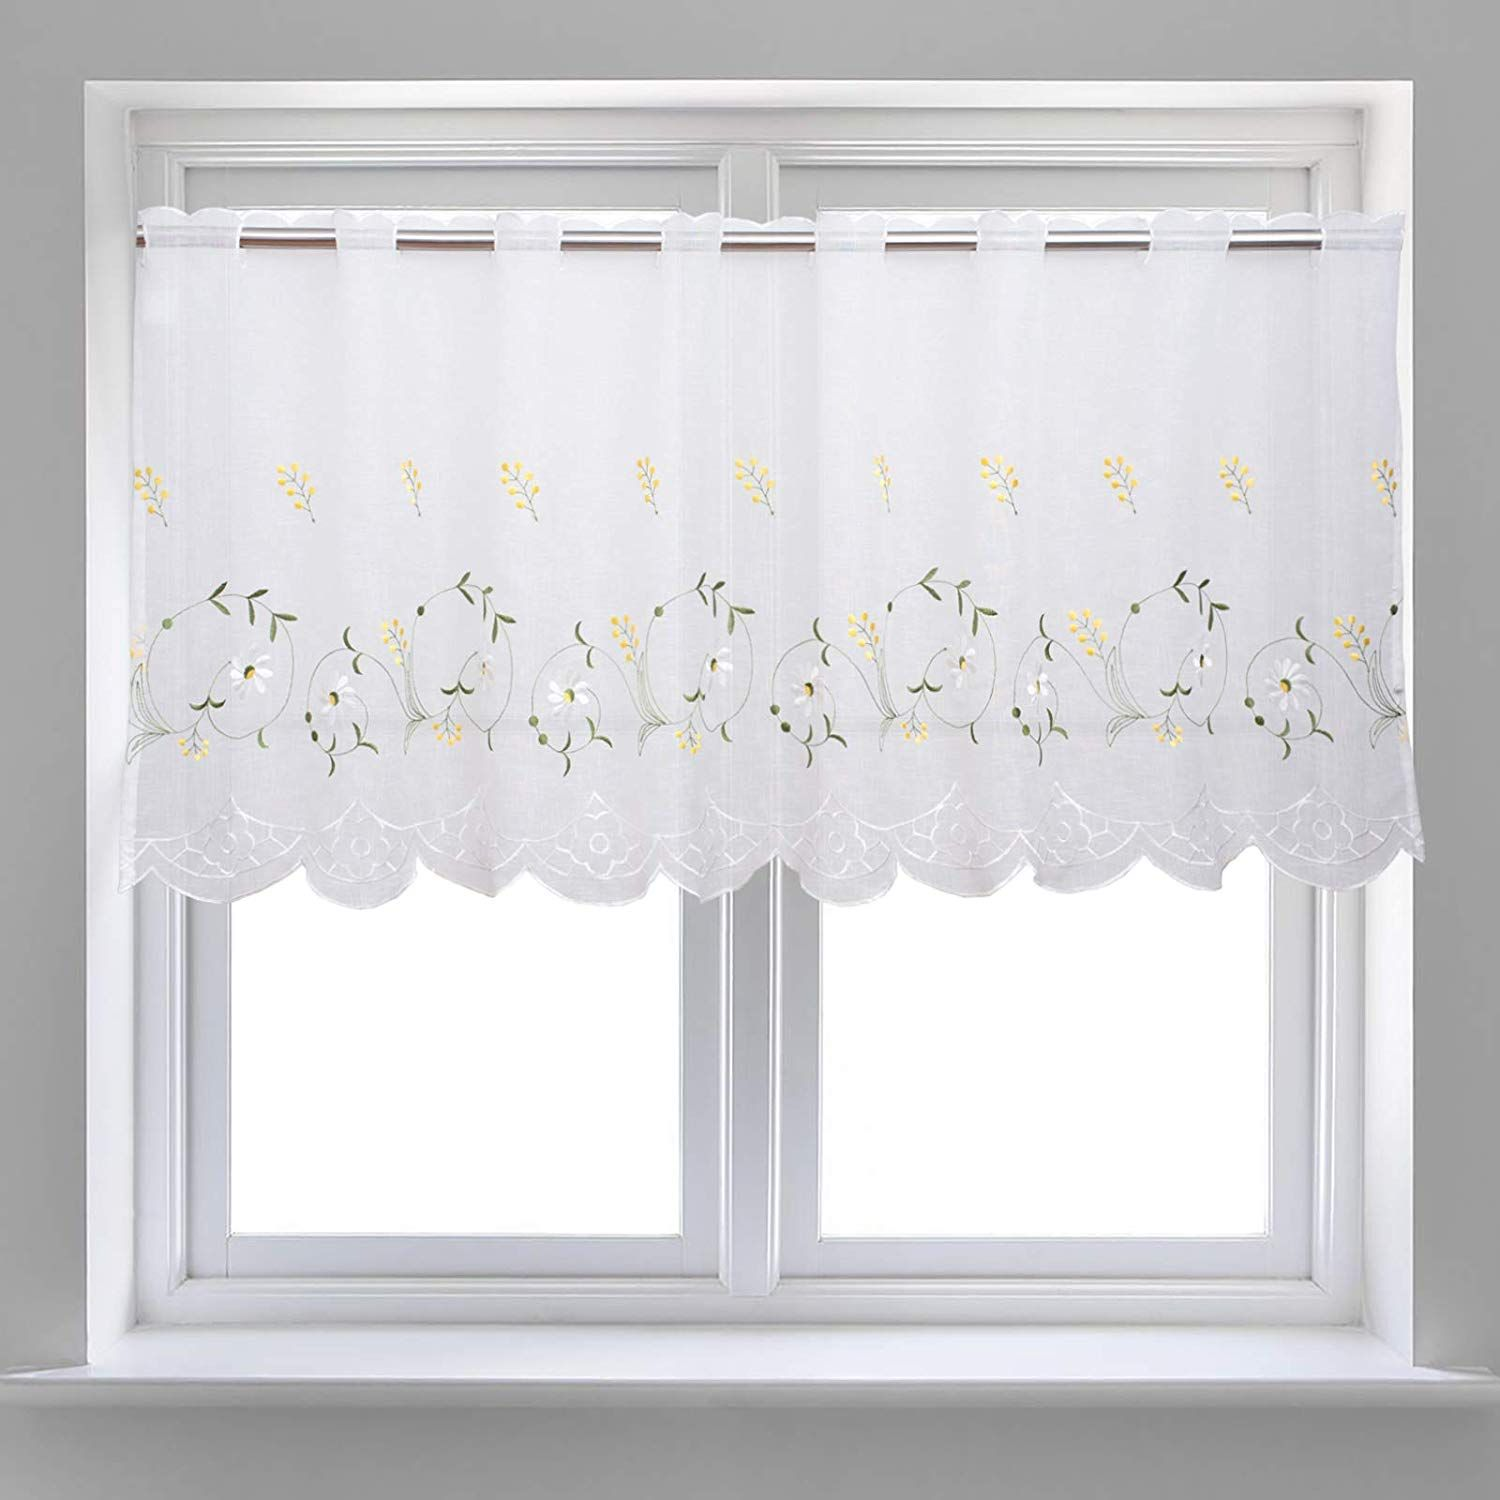 Amazon Com Wemay Panel Embroidery Pastoral Style Cafe Curtain Kitchen Curtain Floral Window Valance W58 X Cafe Curtains Kitchen Cafe Curtains Kitchen Curtains